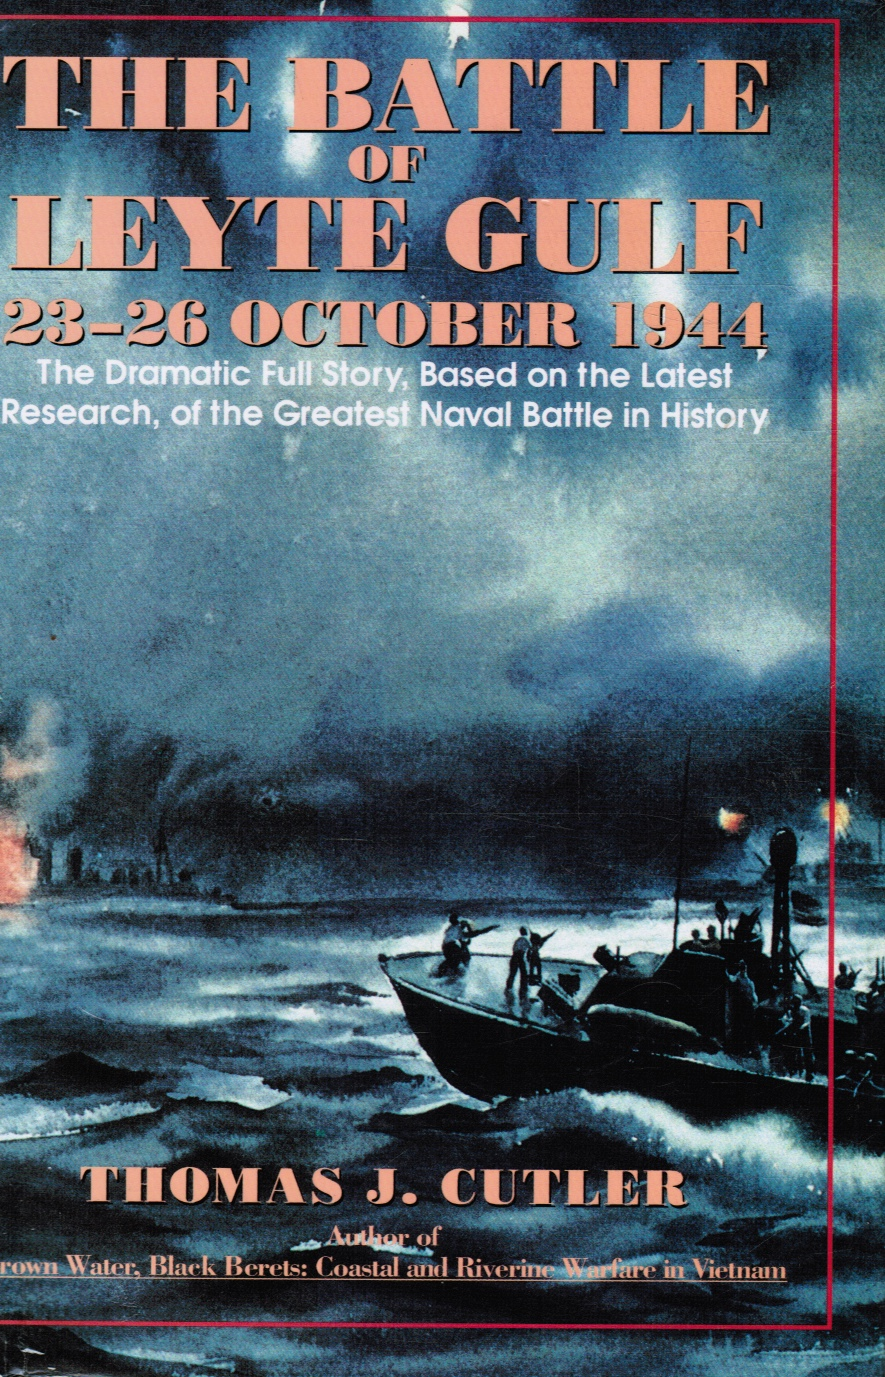 Image for The Battle of Leyte Gulf 23-26 October 1944